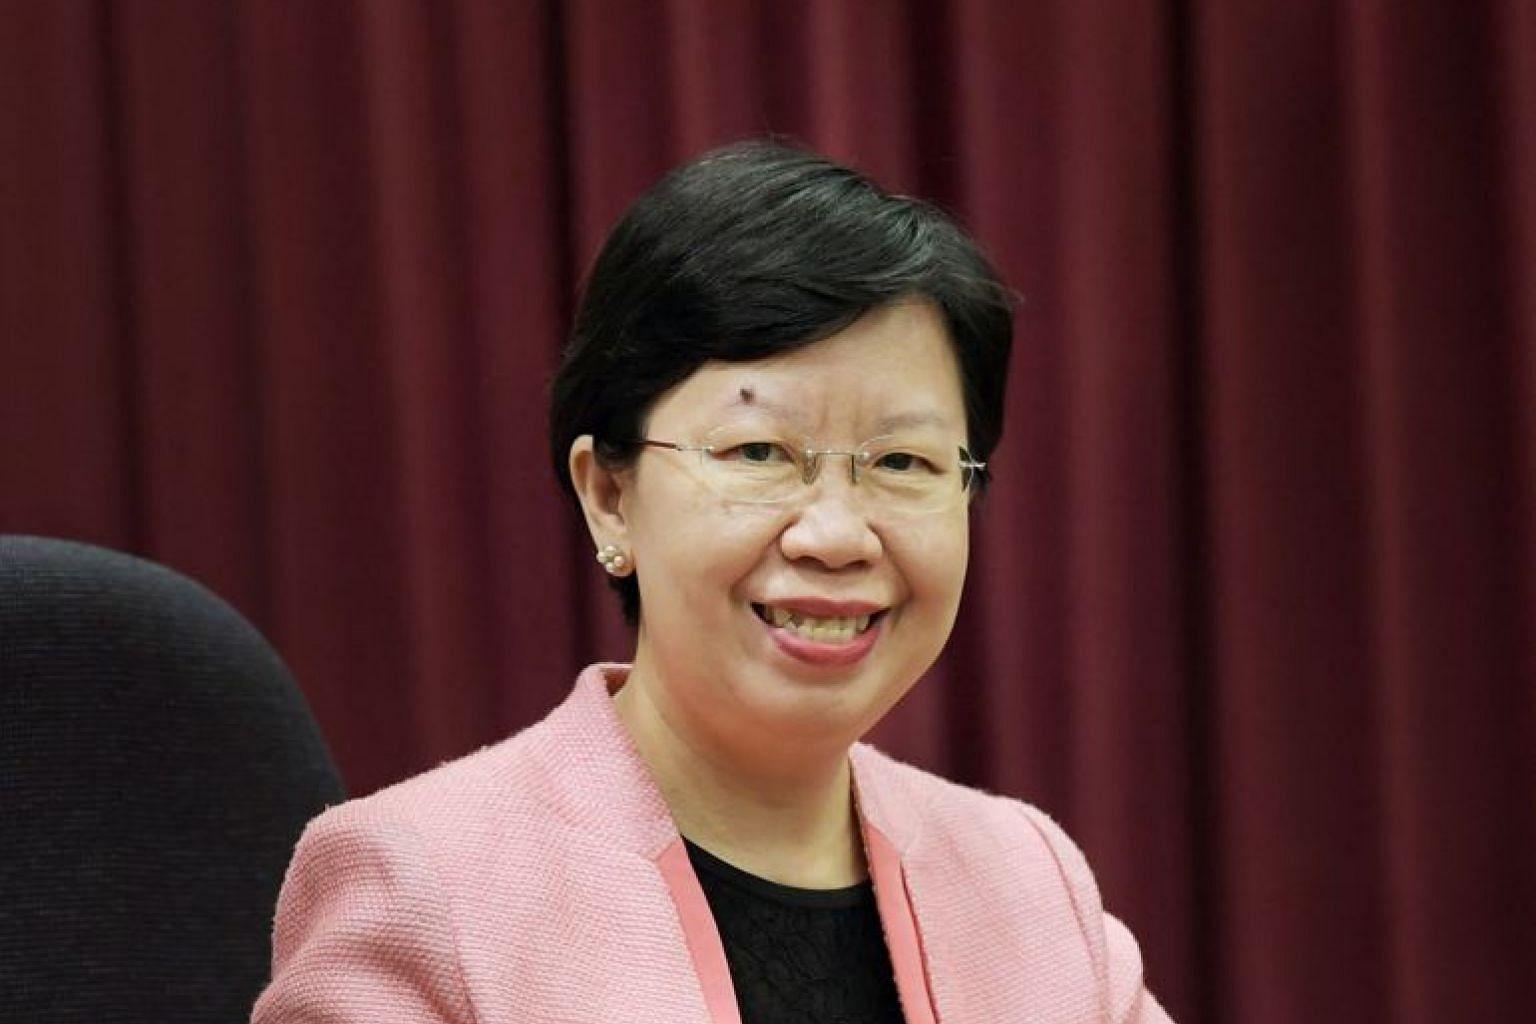 The appointment of Professor Lily Kong - who is well known as a social, cultural and urban geographer - as SMU's next president comes as the university steps up its social science research and course offerings.